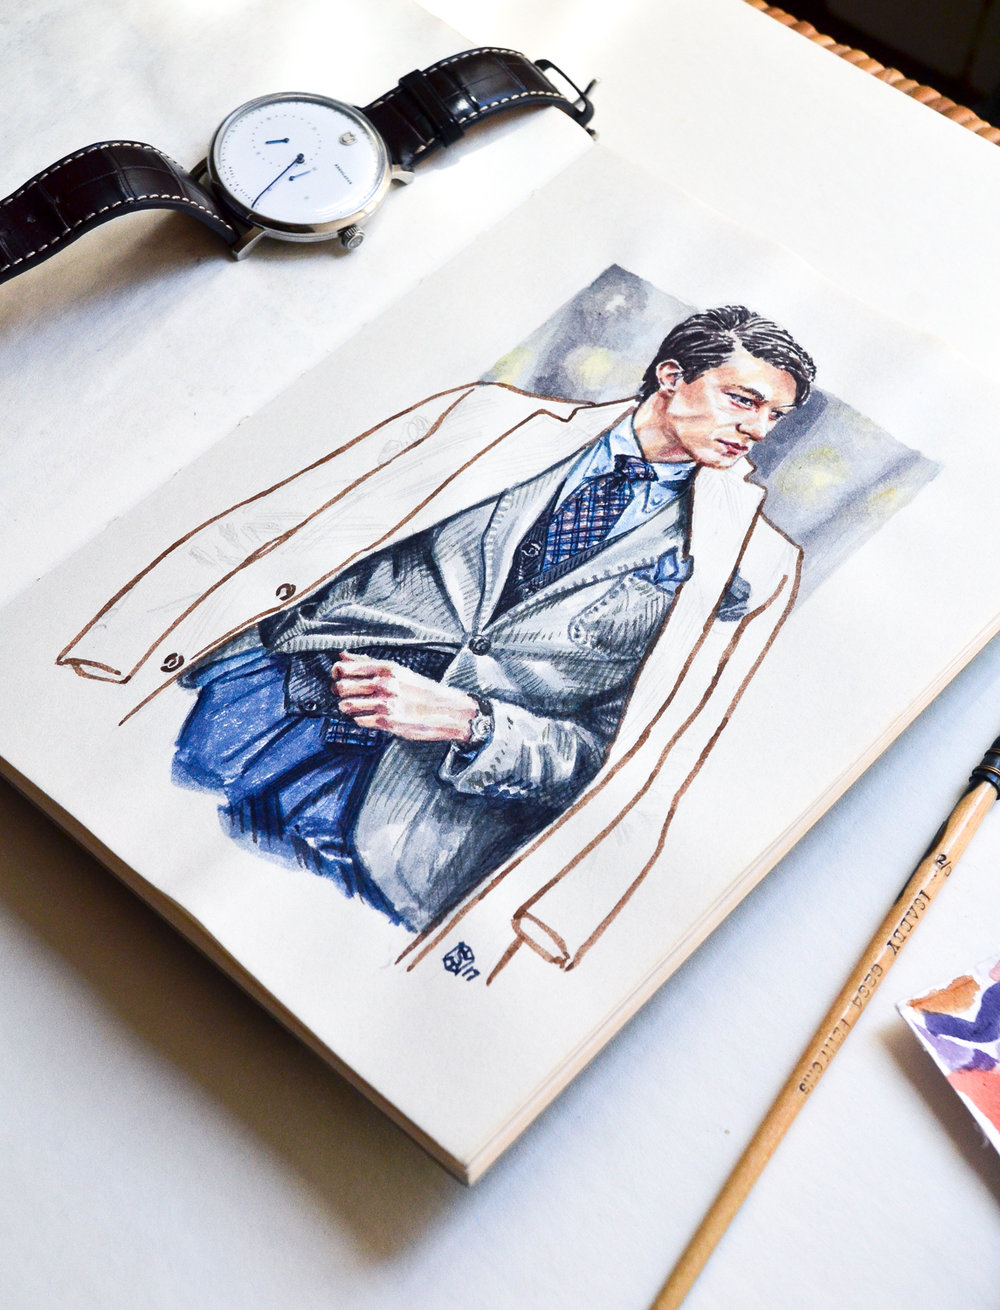 Sketchbook fashion illustration of Szymon Jeziorko in the Sunflowerman Studio